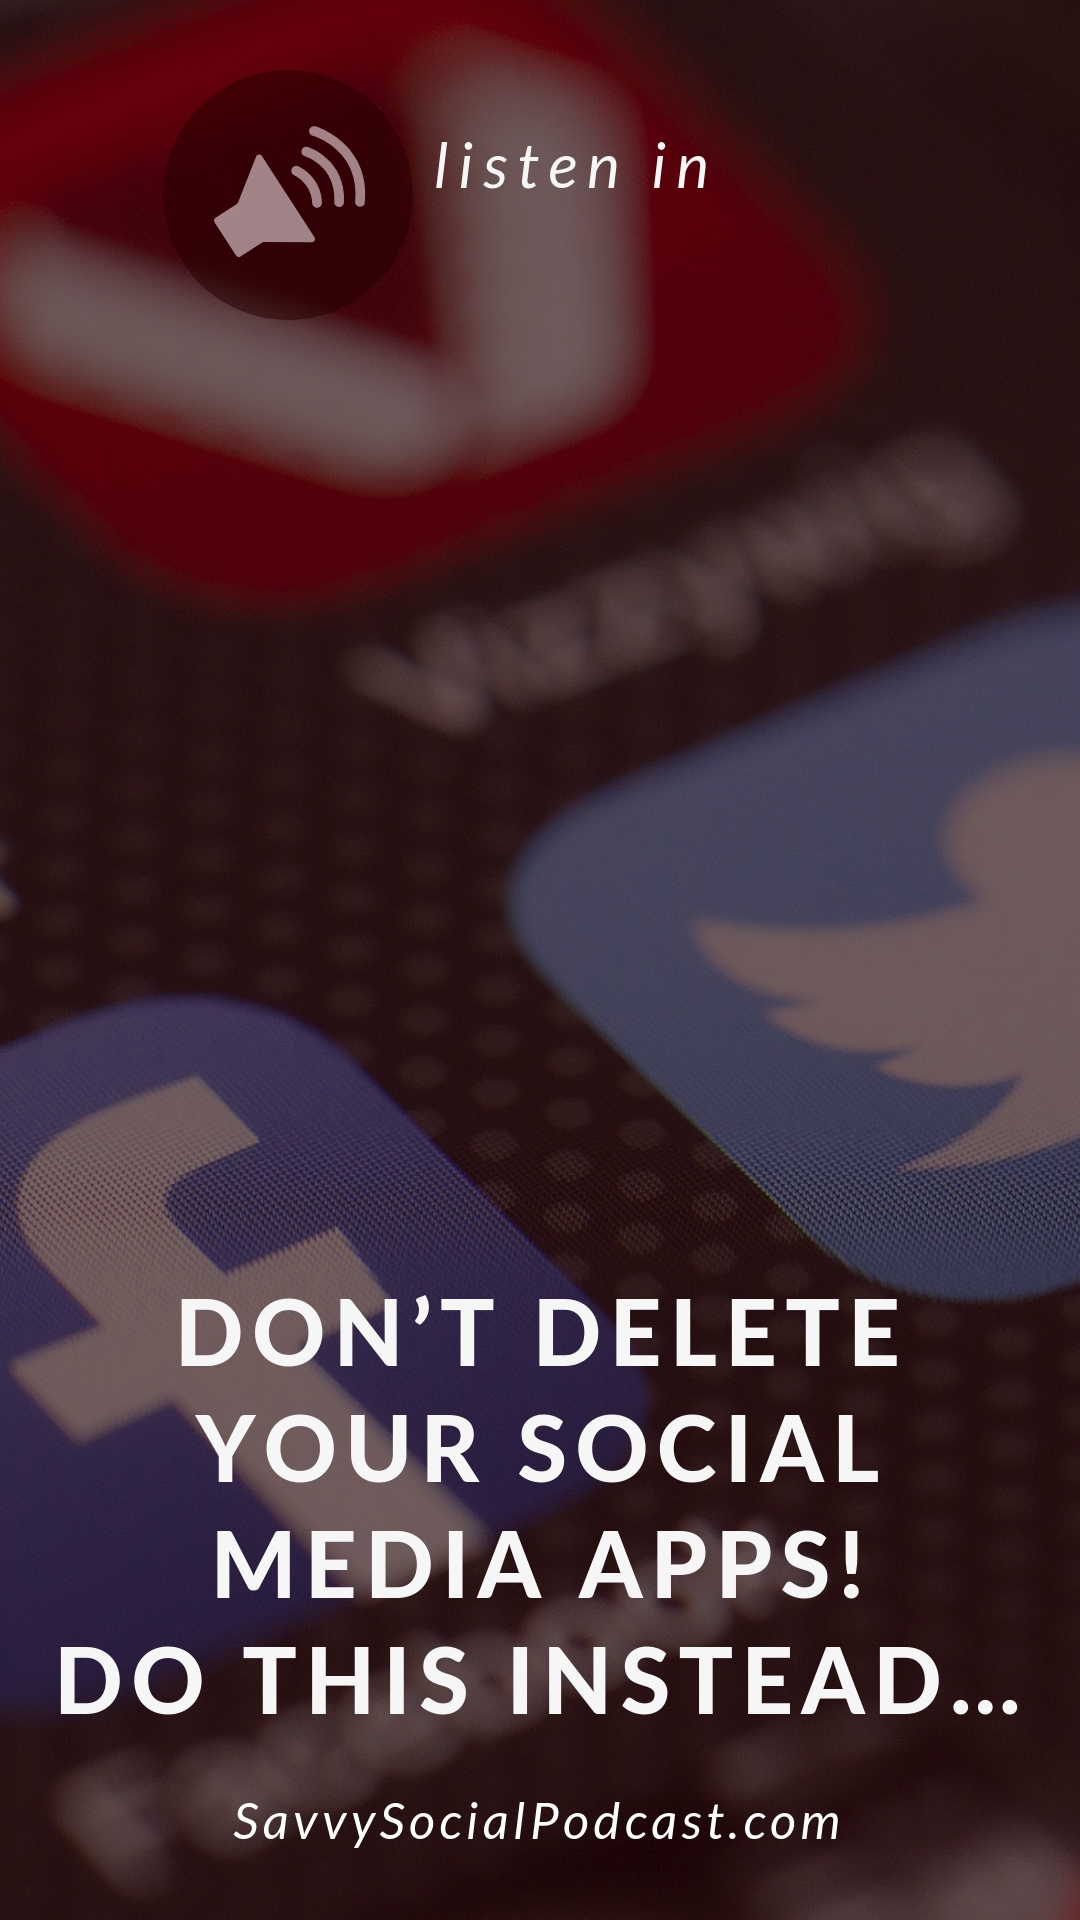 Chances are if you feel the need to delete your social media apps, it's because you feel overwhelmed by it or think you're spending too much time on it. The good news is you're not alone! Research shows habitual social media use is common so I'm sharing 4 easy steps to help you reclaim your control over social media!